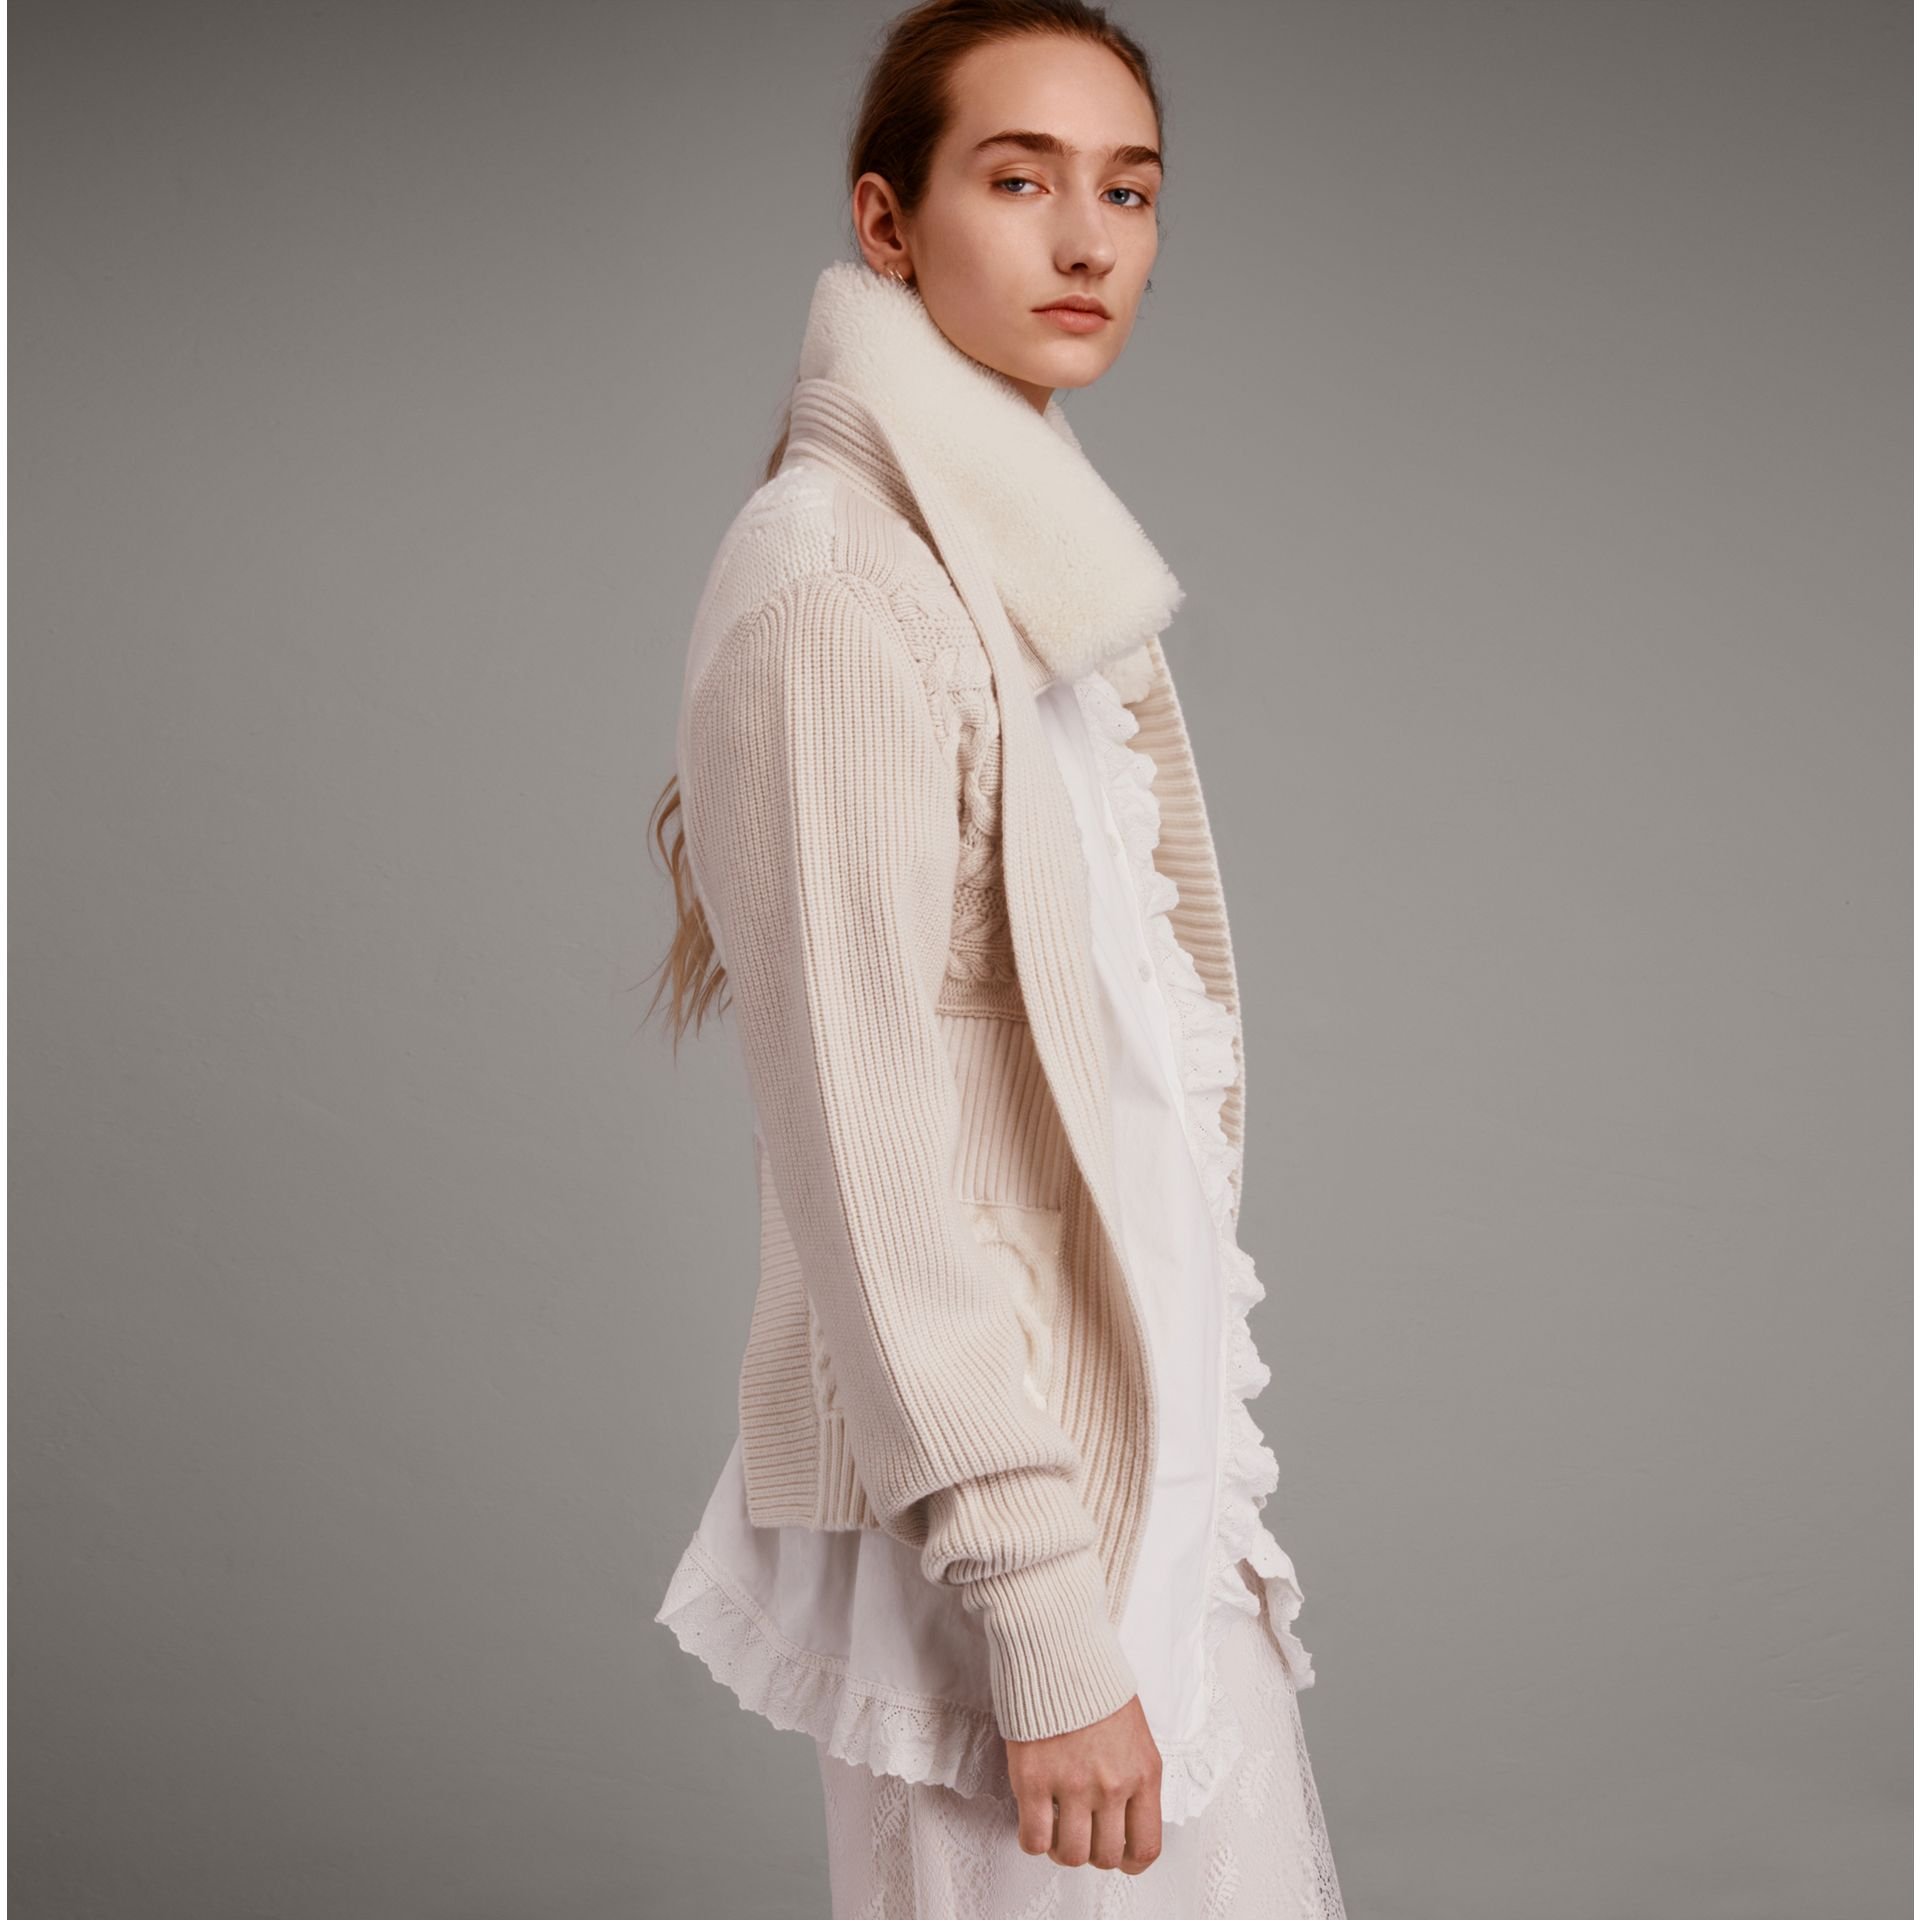 Shearling Collar Knitted Wool Cashmere Jacket in Natural White - Women | Burberry Canada - gallery image 1